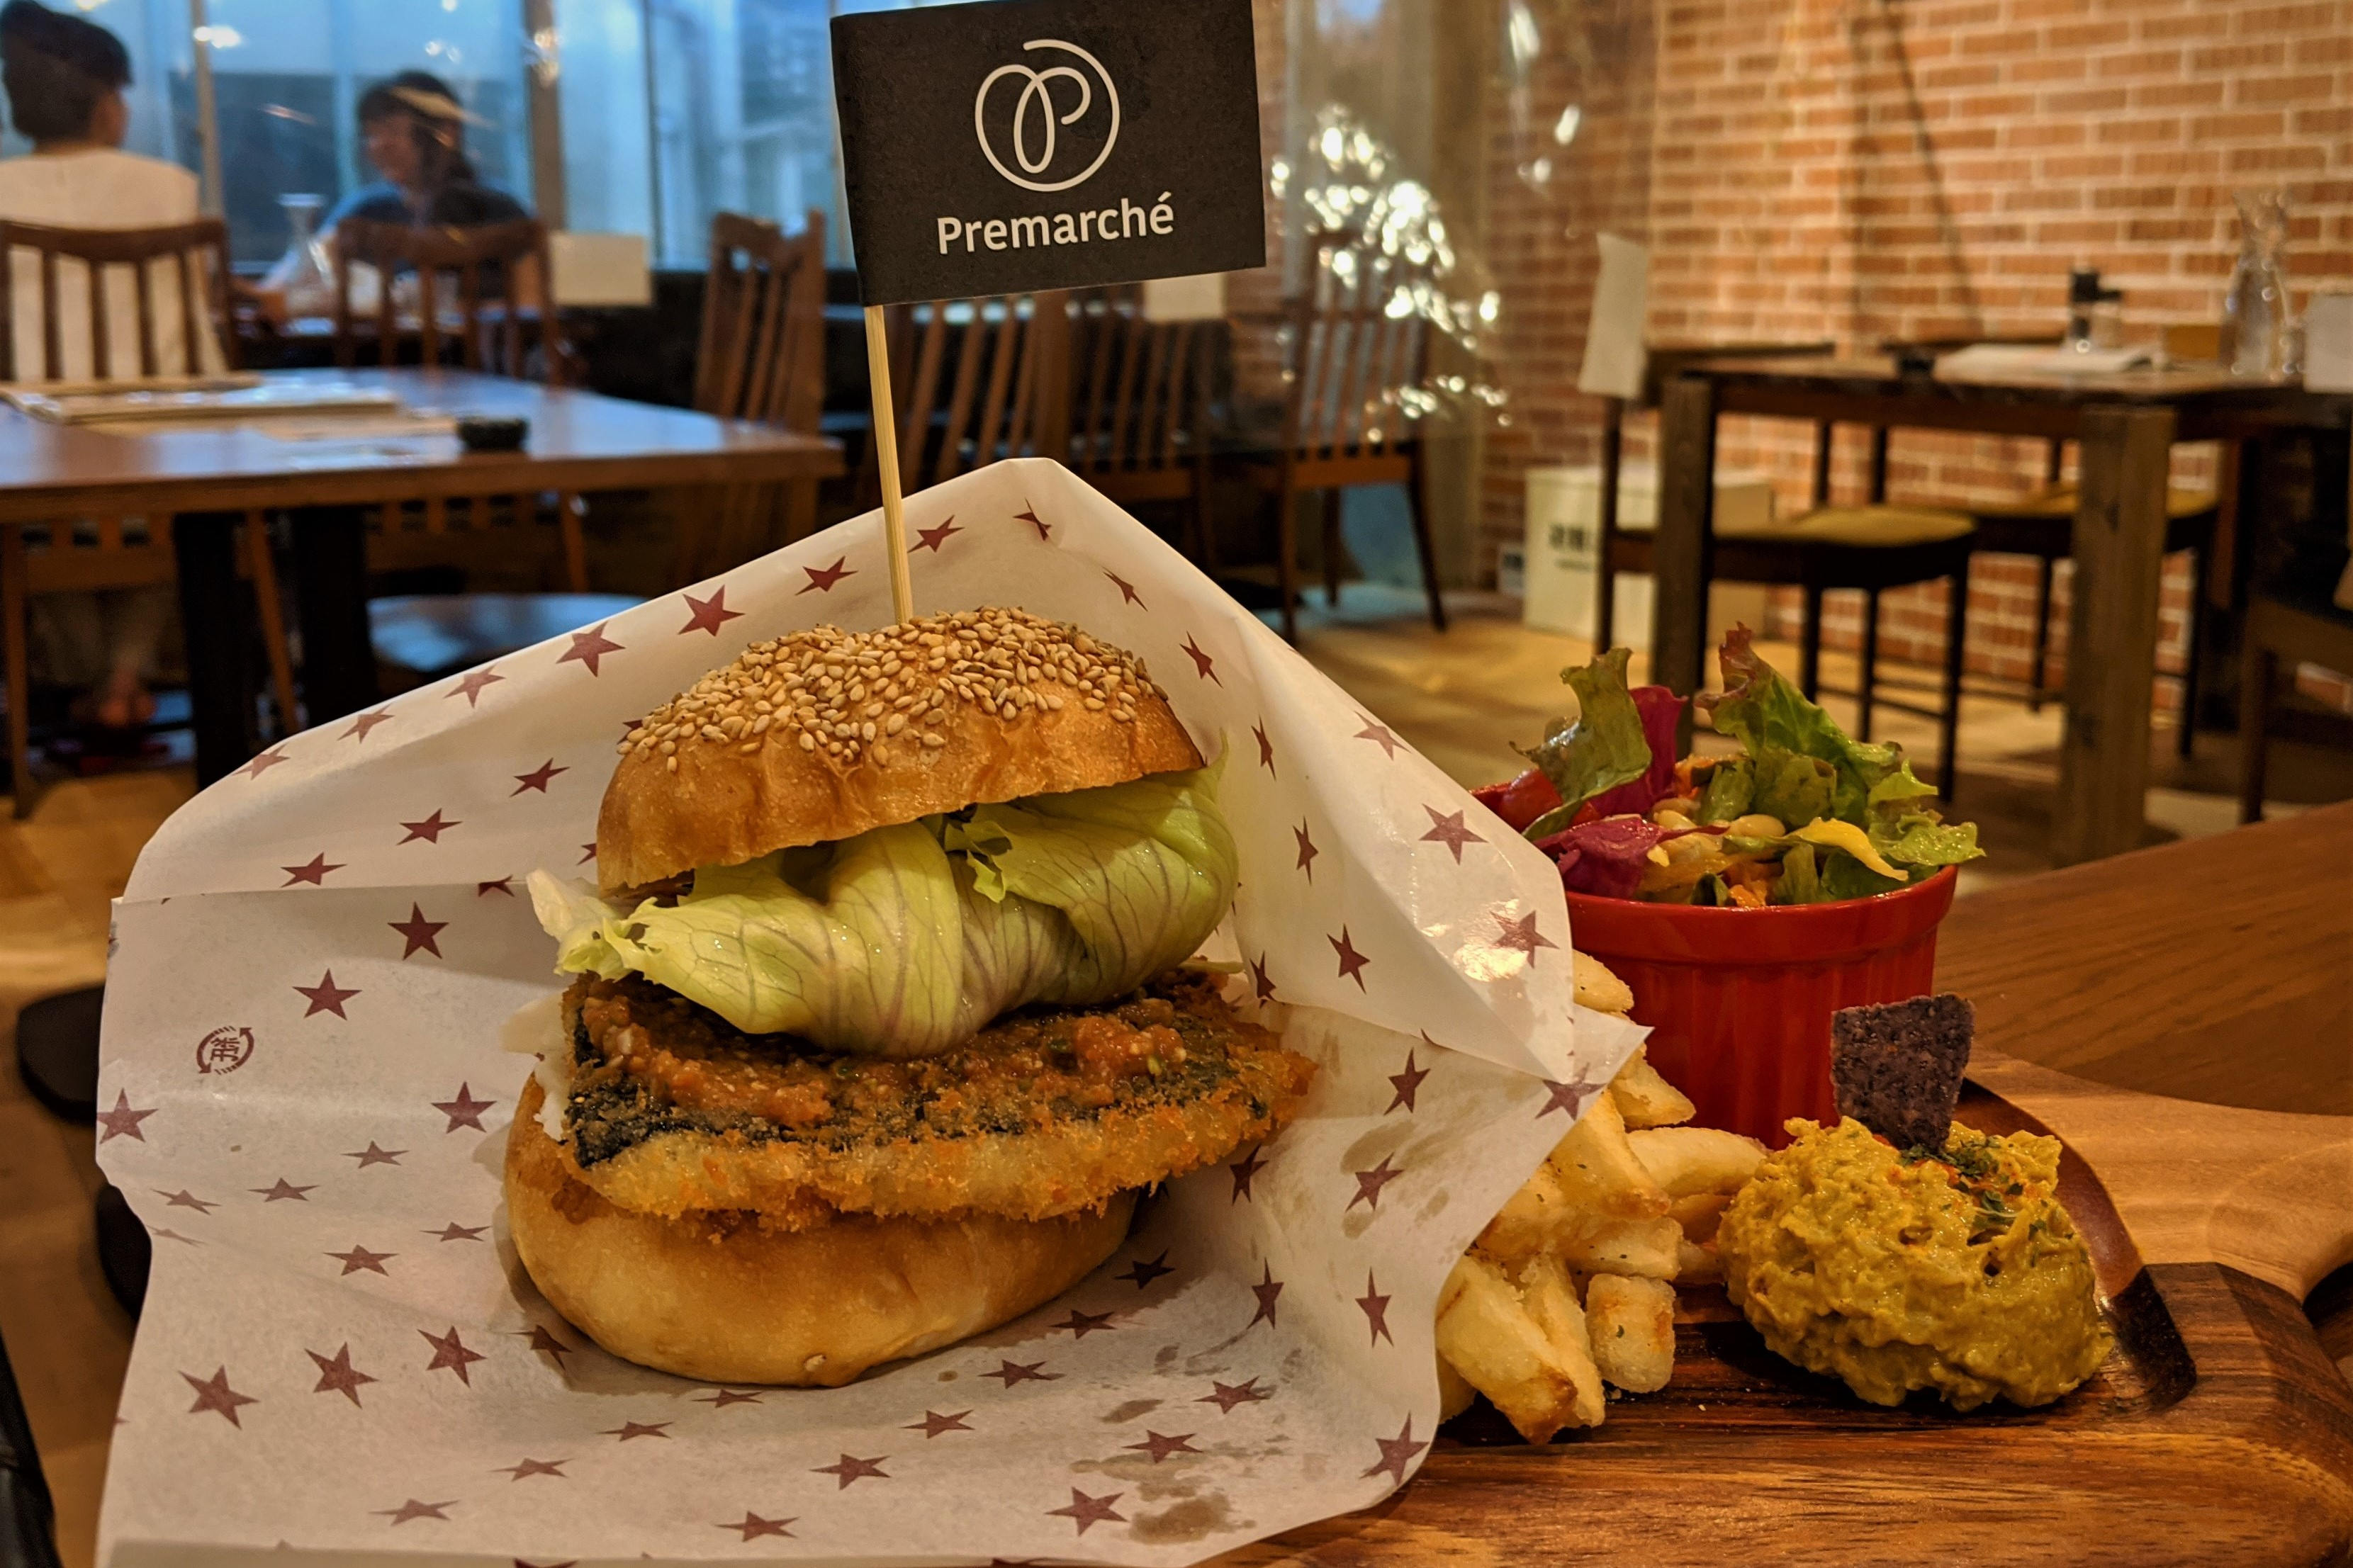 vegetarian burger wrapped in paper with a side of chips and salad on a wooden table